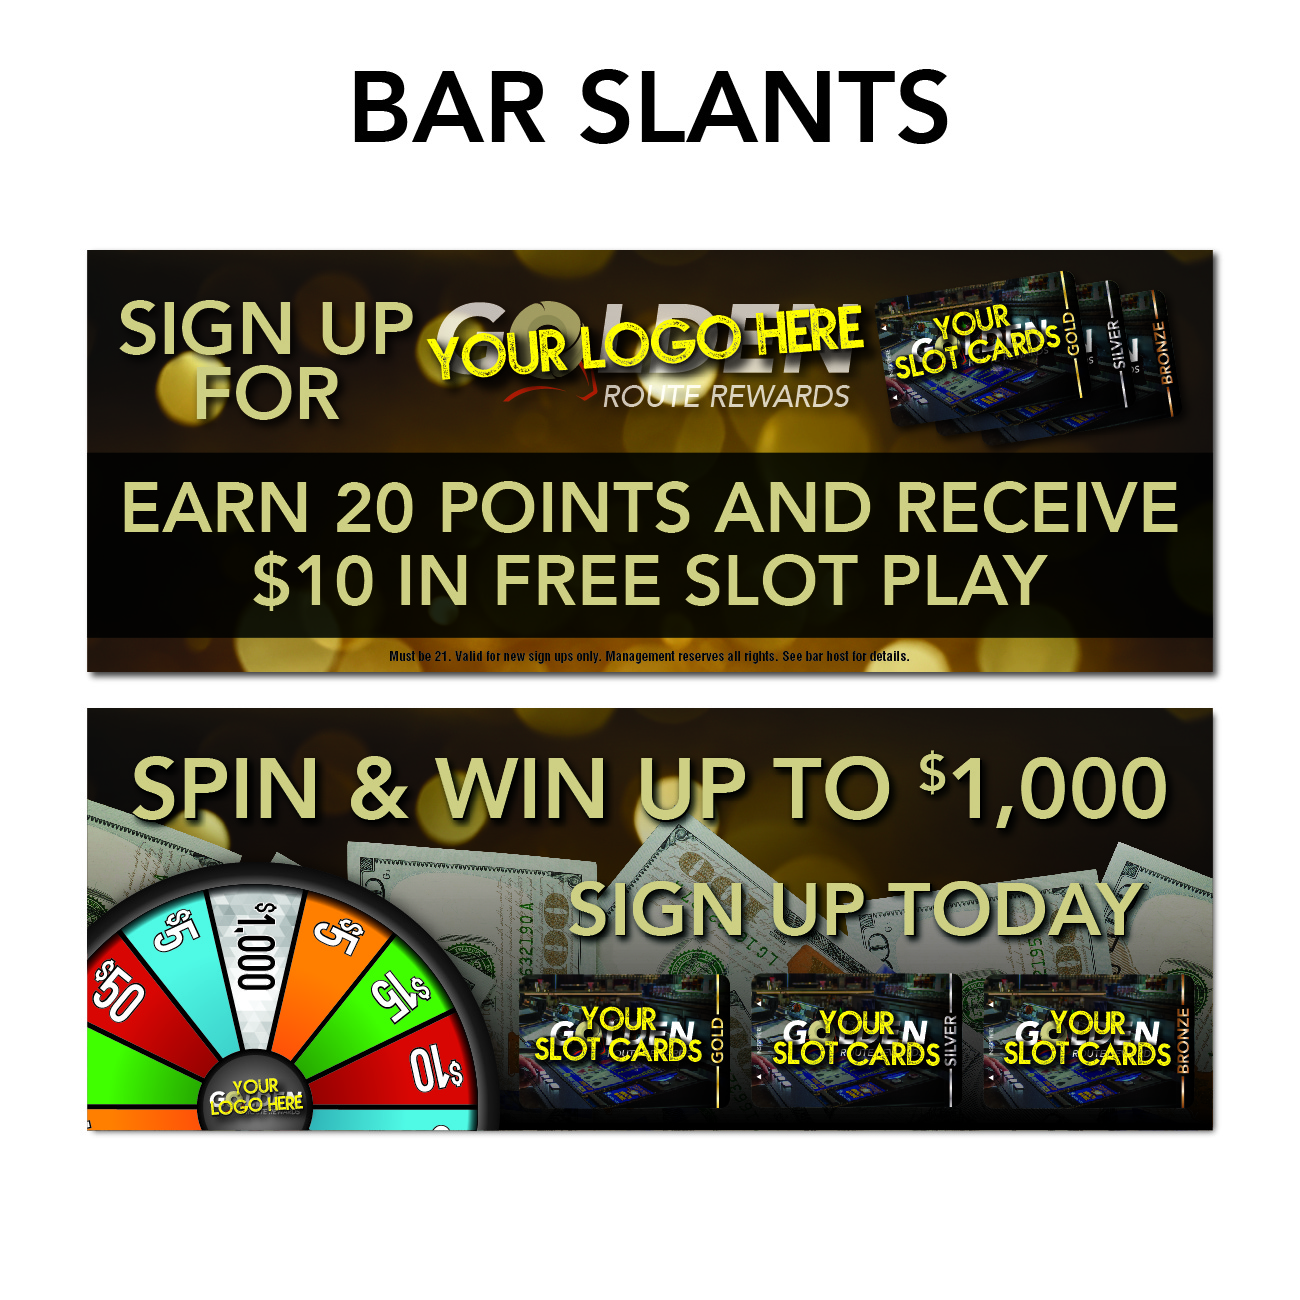 gro route rewards marketing needs bar slants